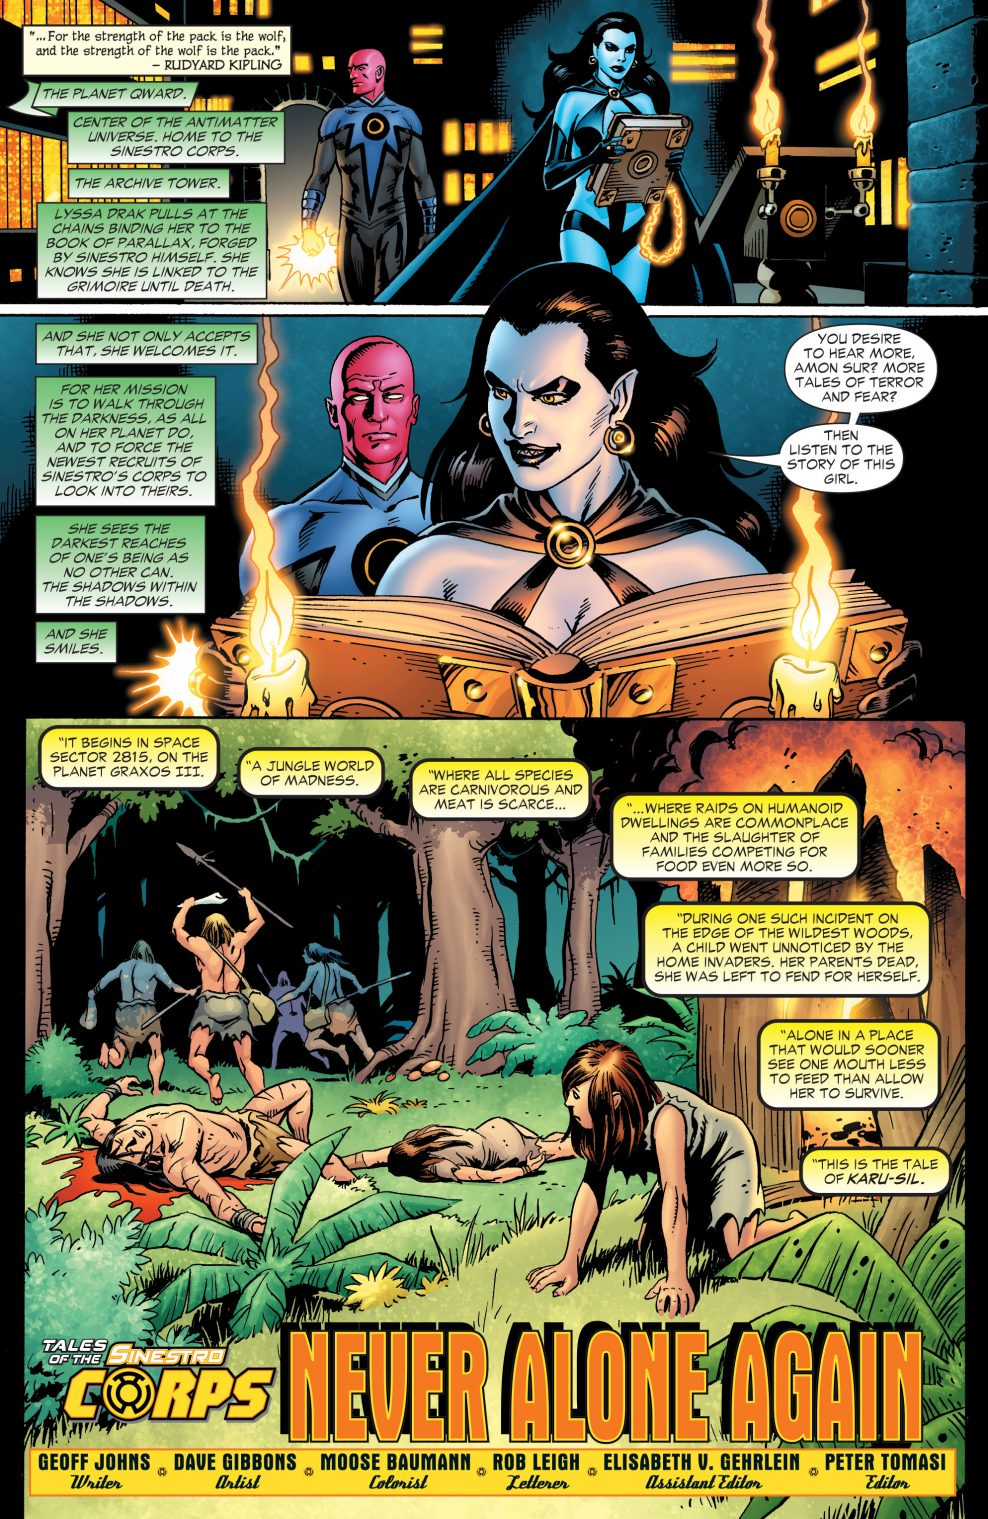 The Tale Of Sinestro Corps Member Karu-Sil